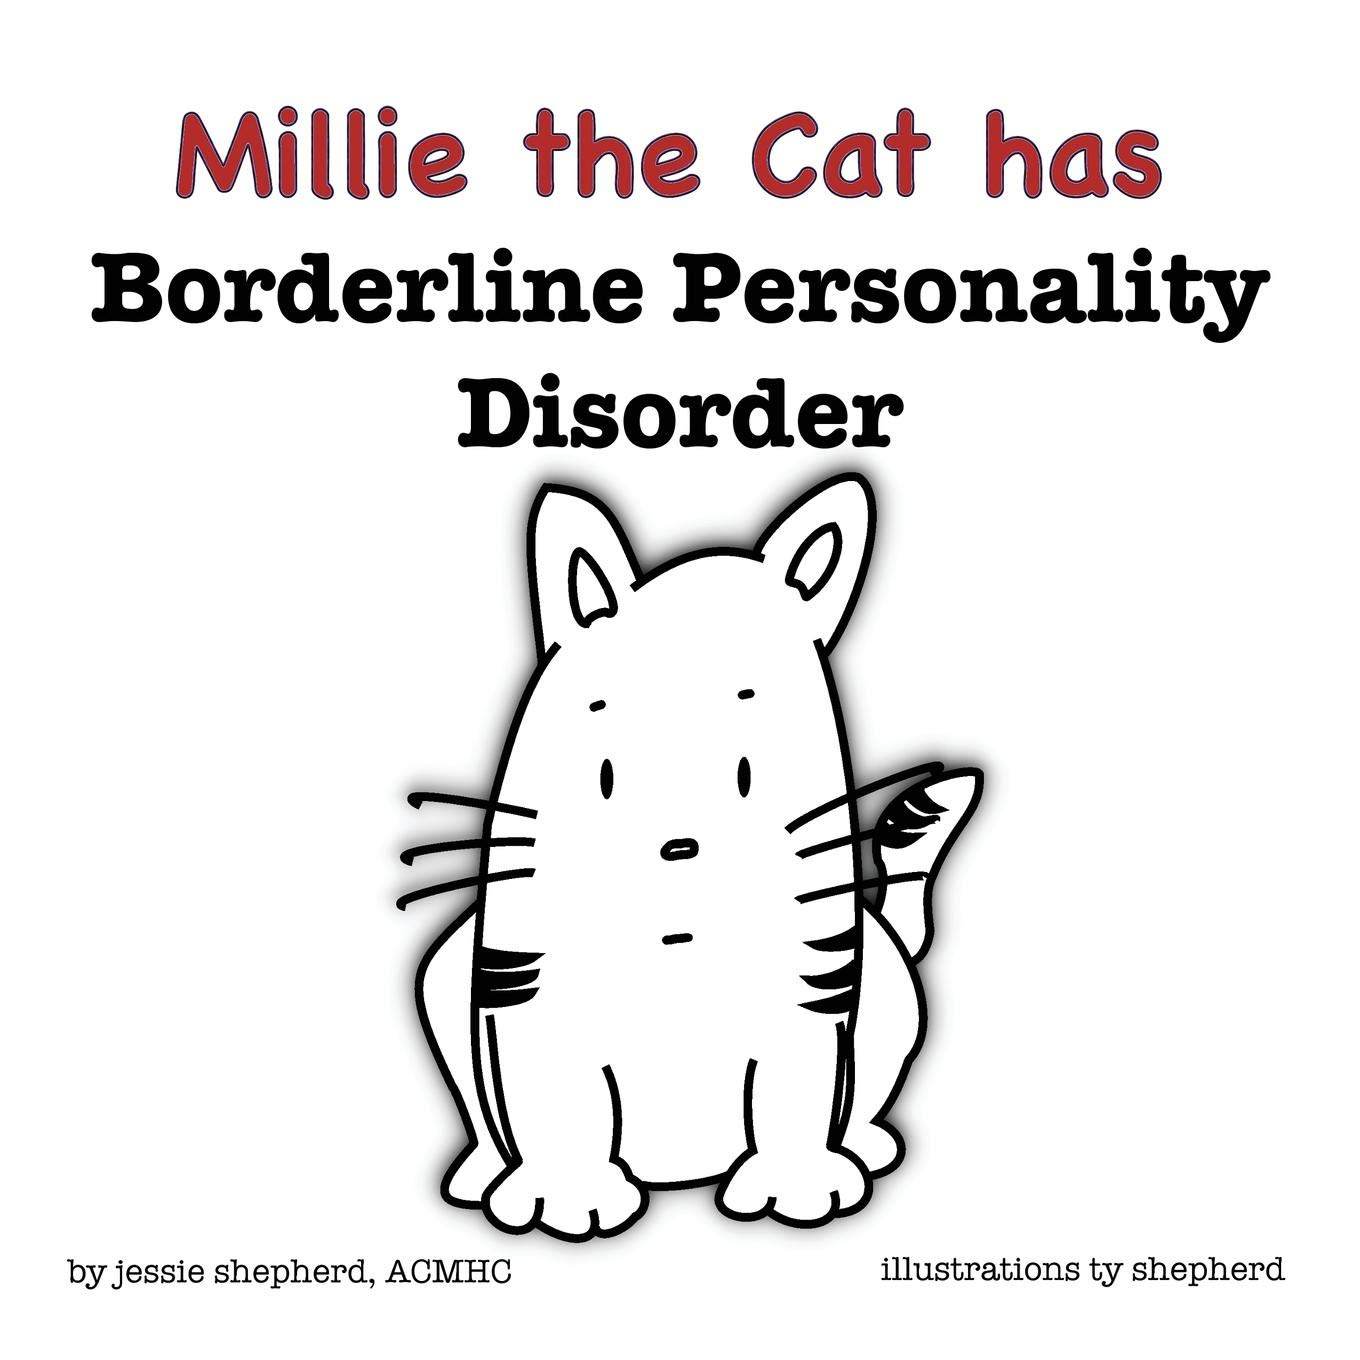 Mille the Cat has Borderline Personality Disorder (What